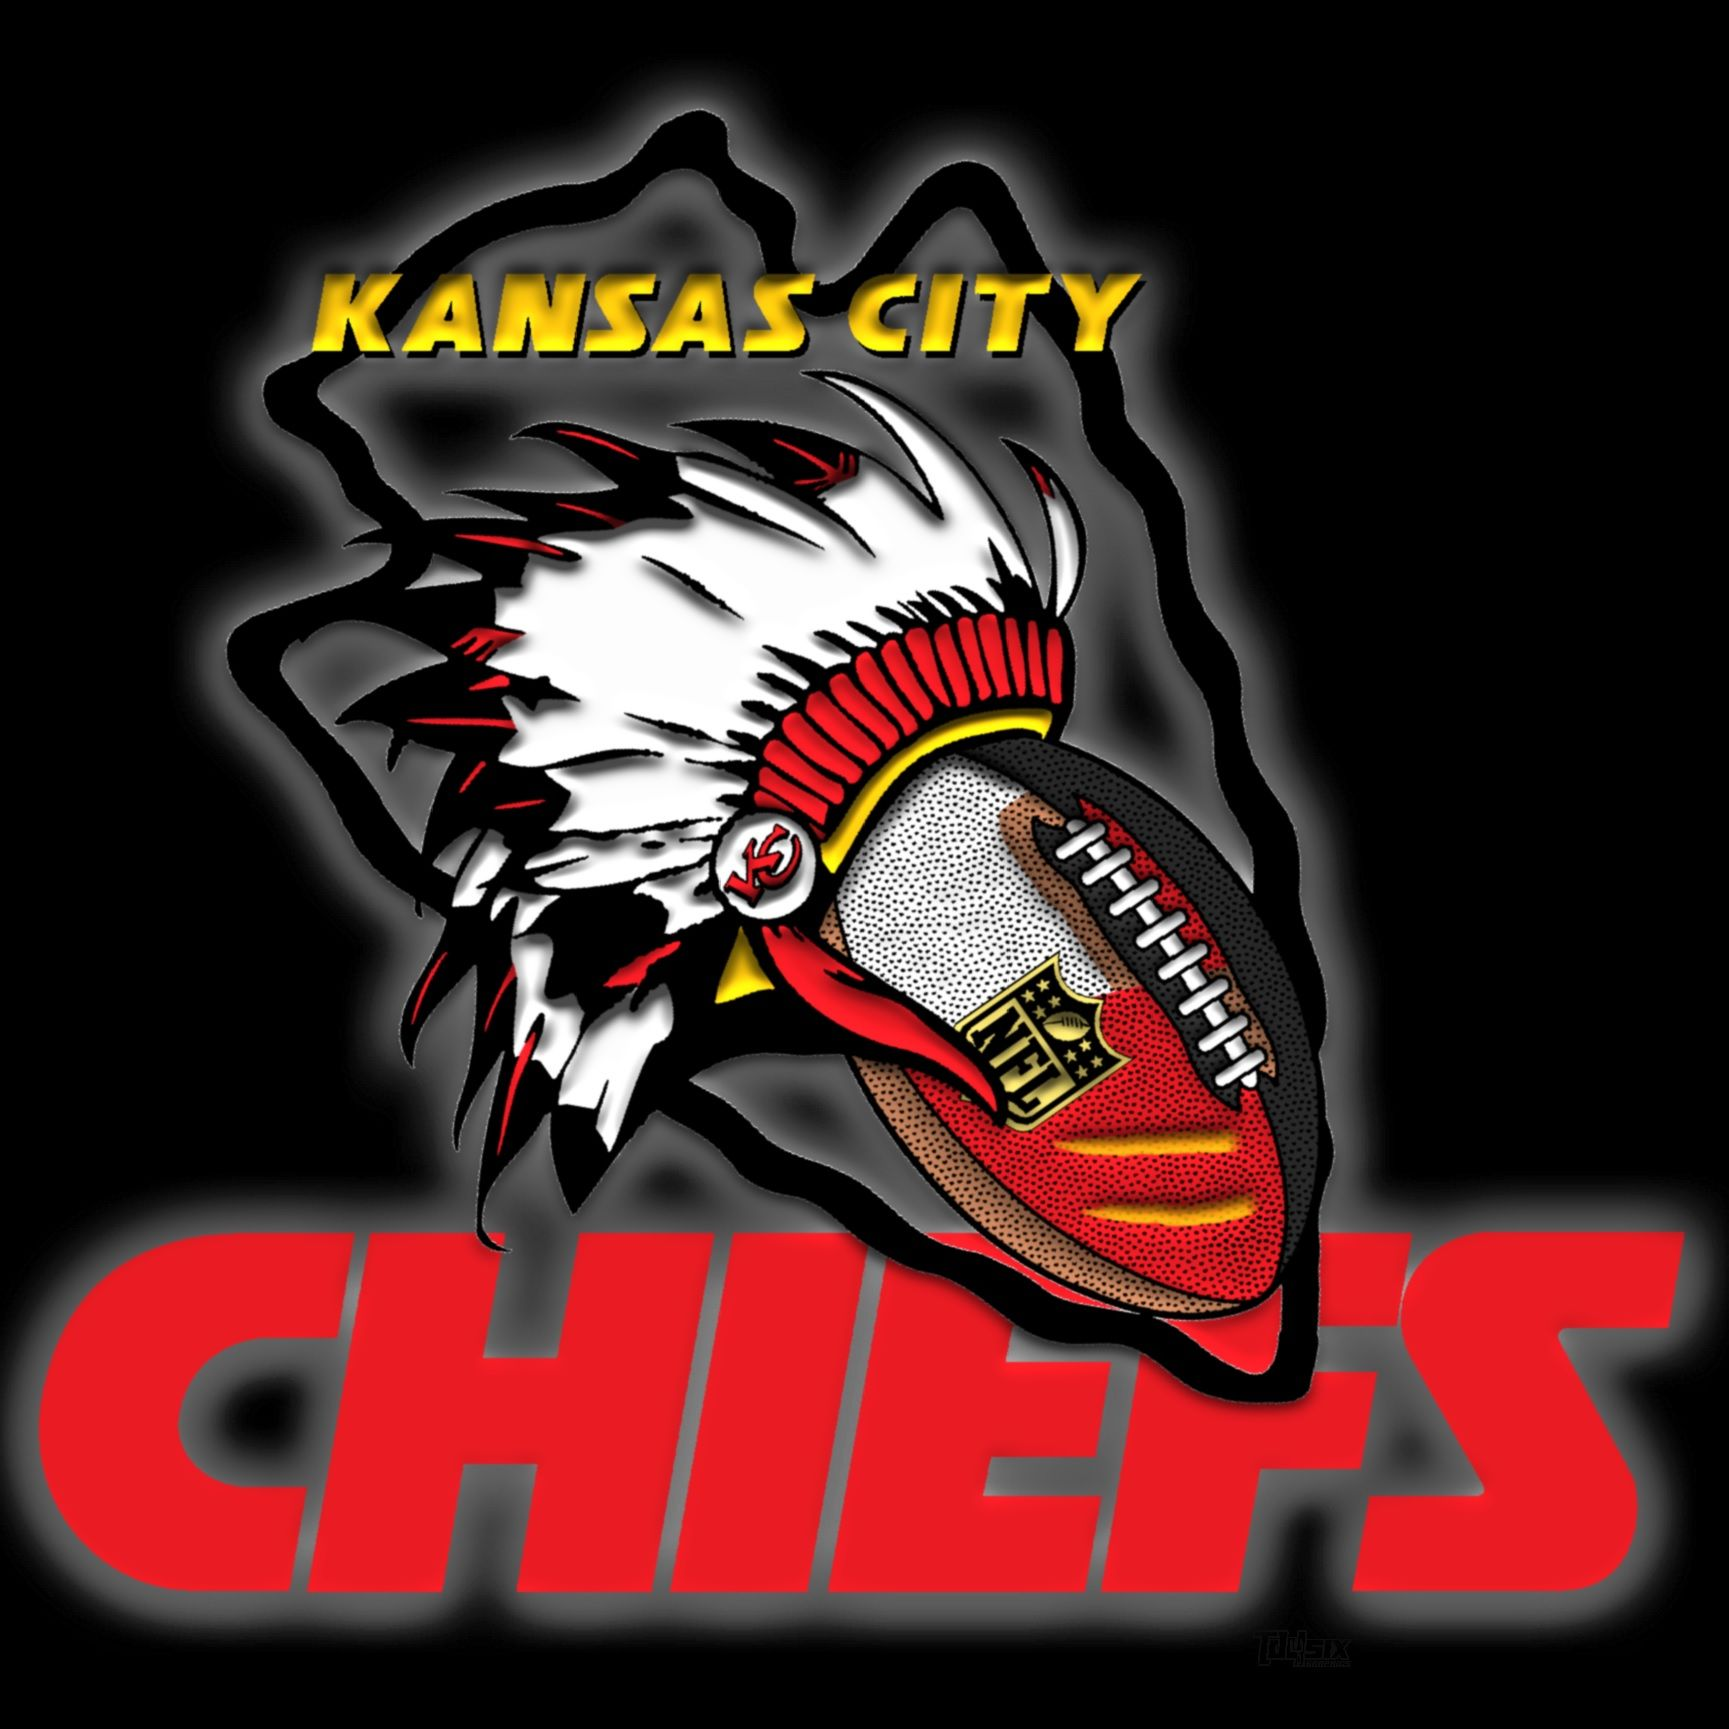 Kansas City Chiefs Football Kansas City Chiefs Logo Kansas City Chiefs Apparel Chiefs Logo